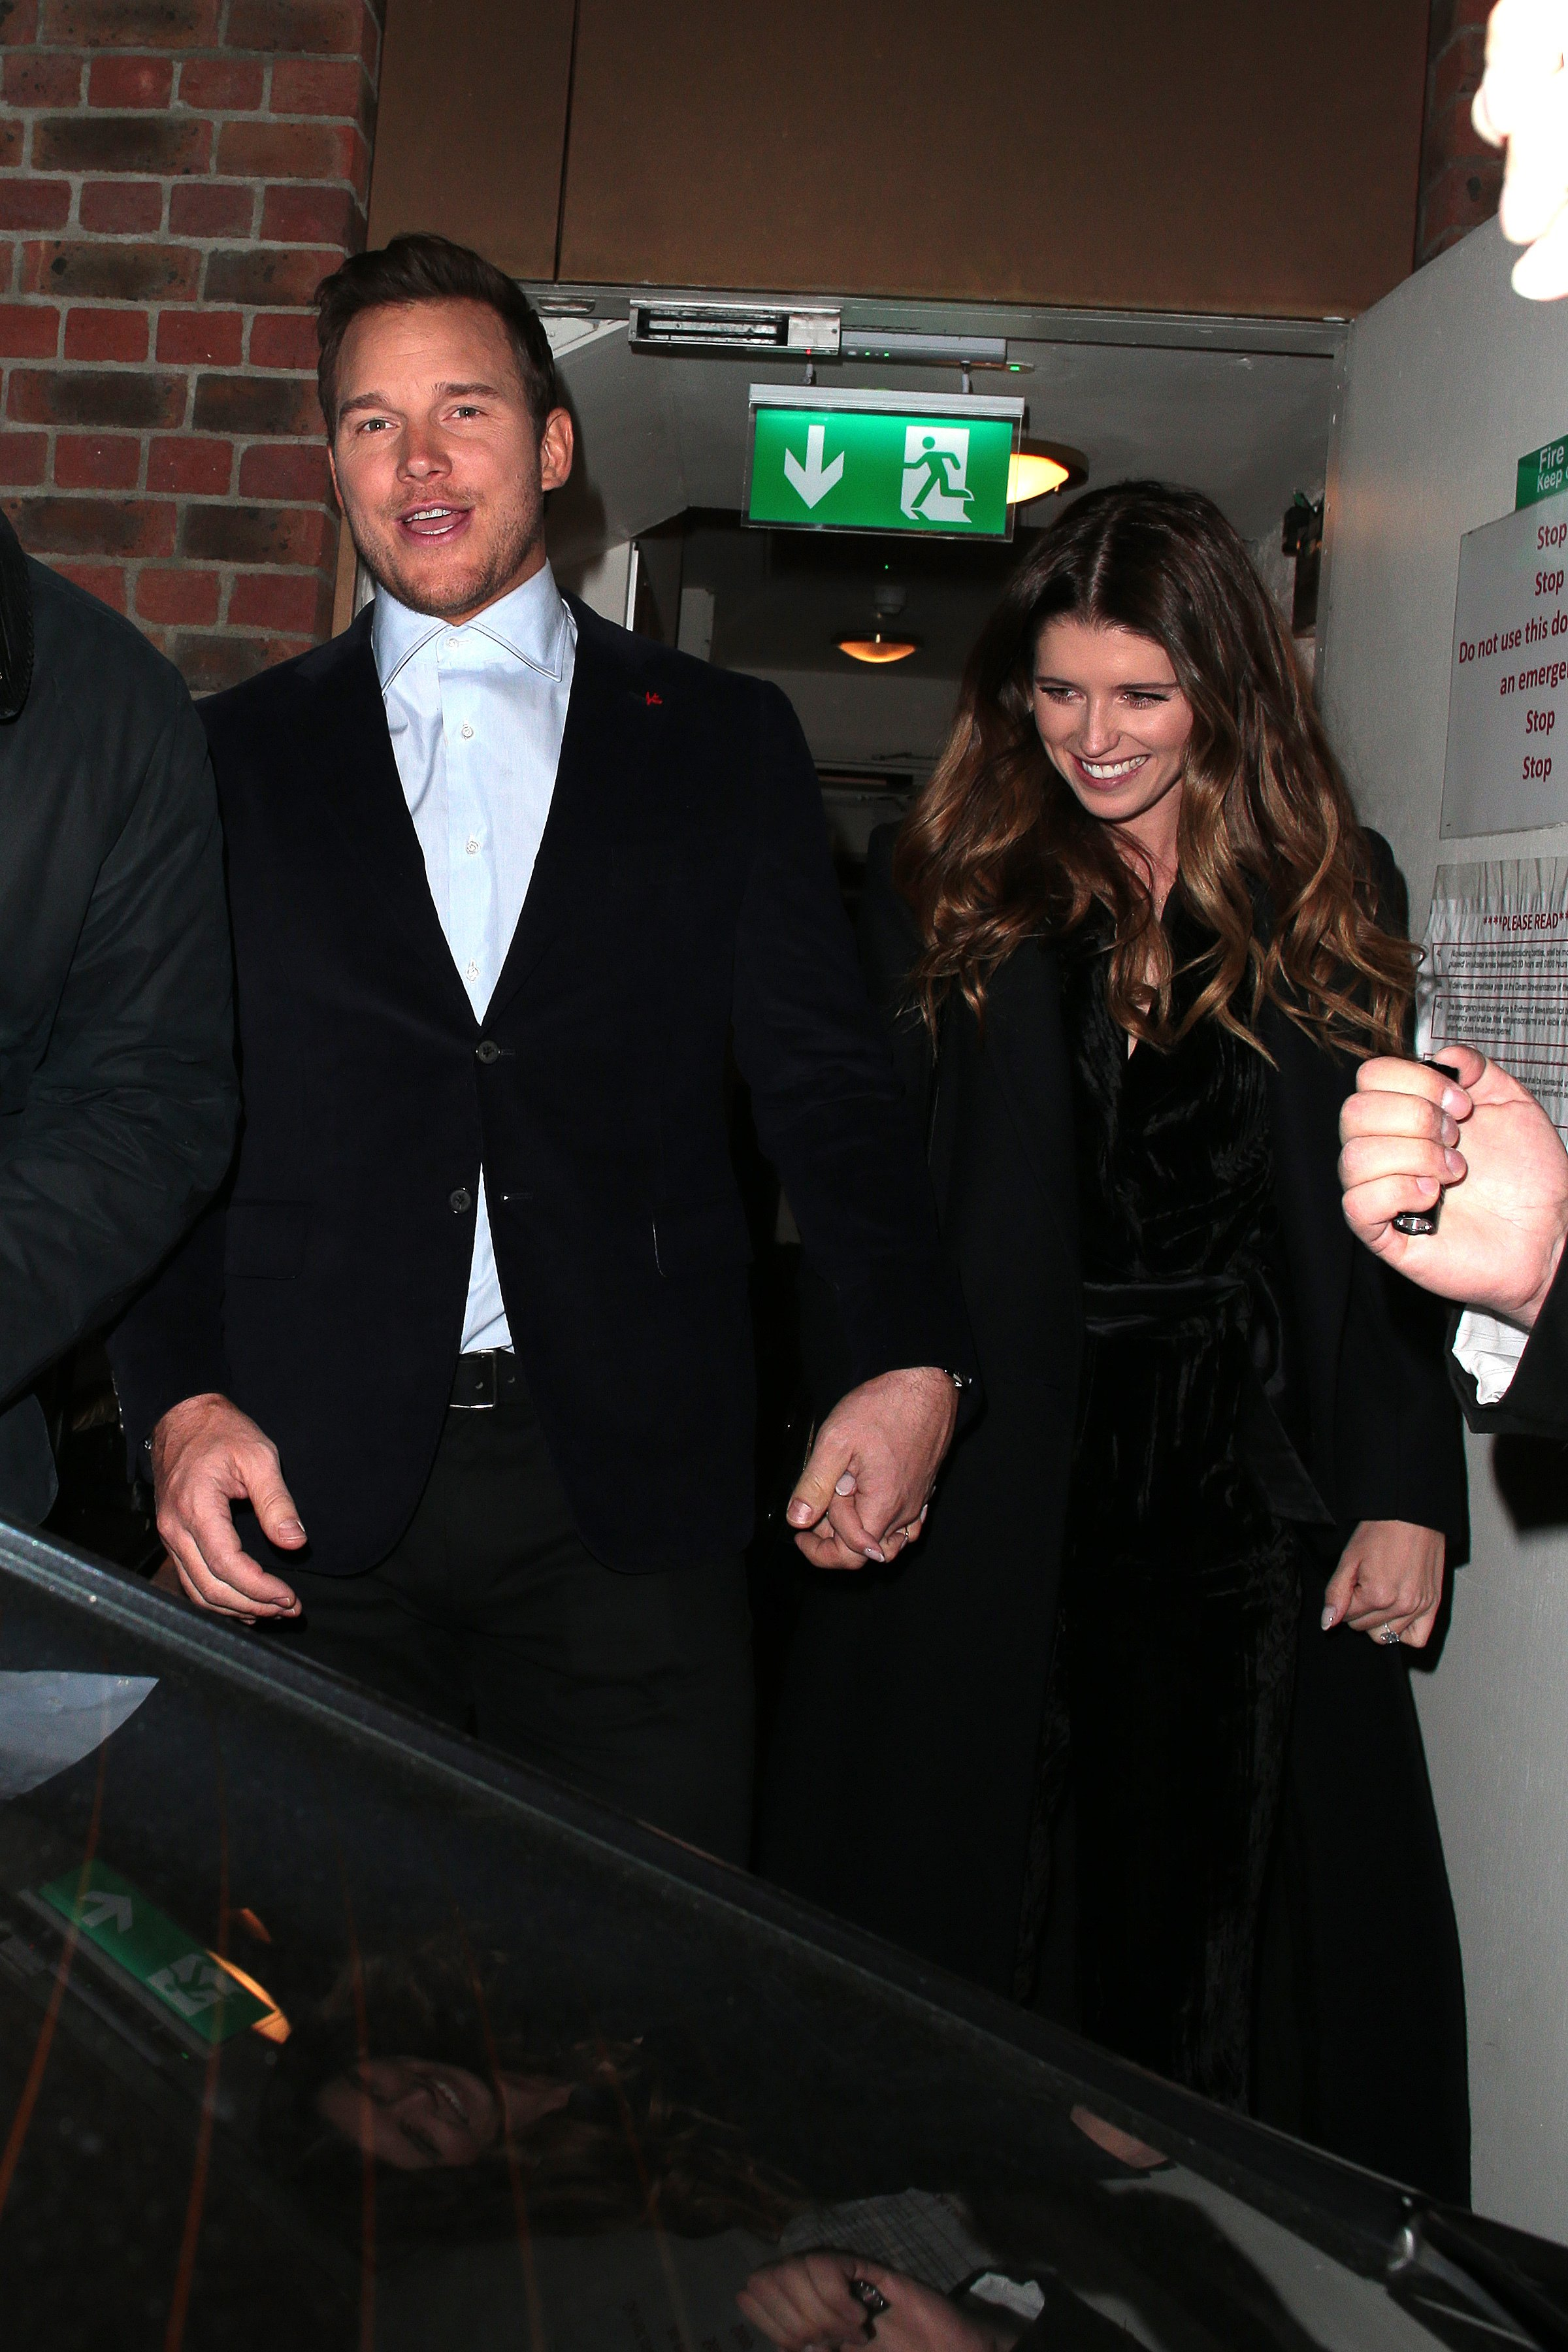 Chris Pratt and Katherine Schwarzenegger during a night out at Soho House on in London, England | Photo: Getty Images